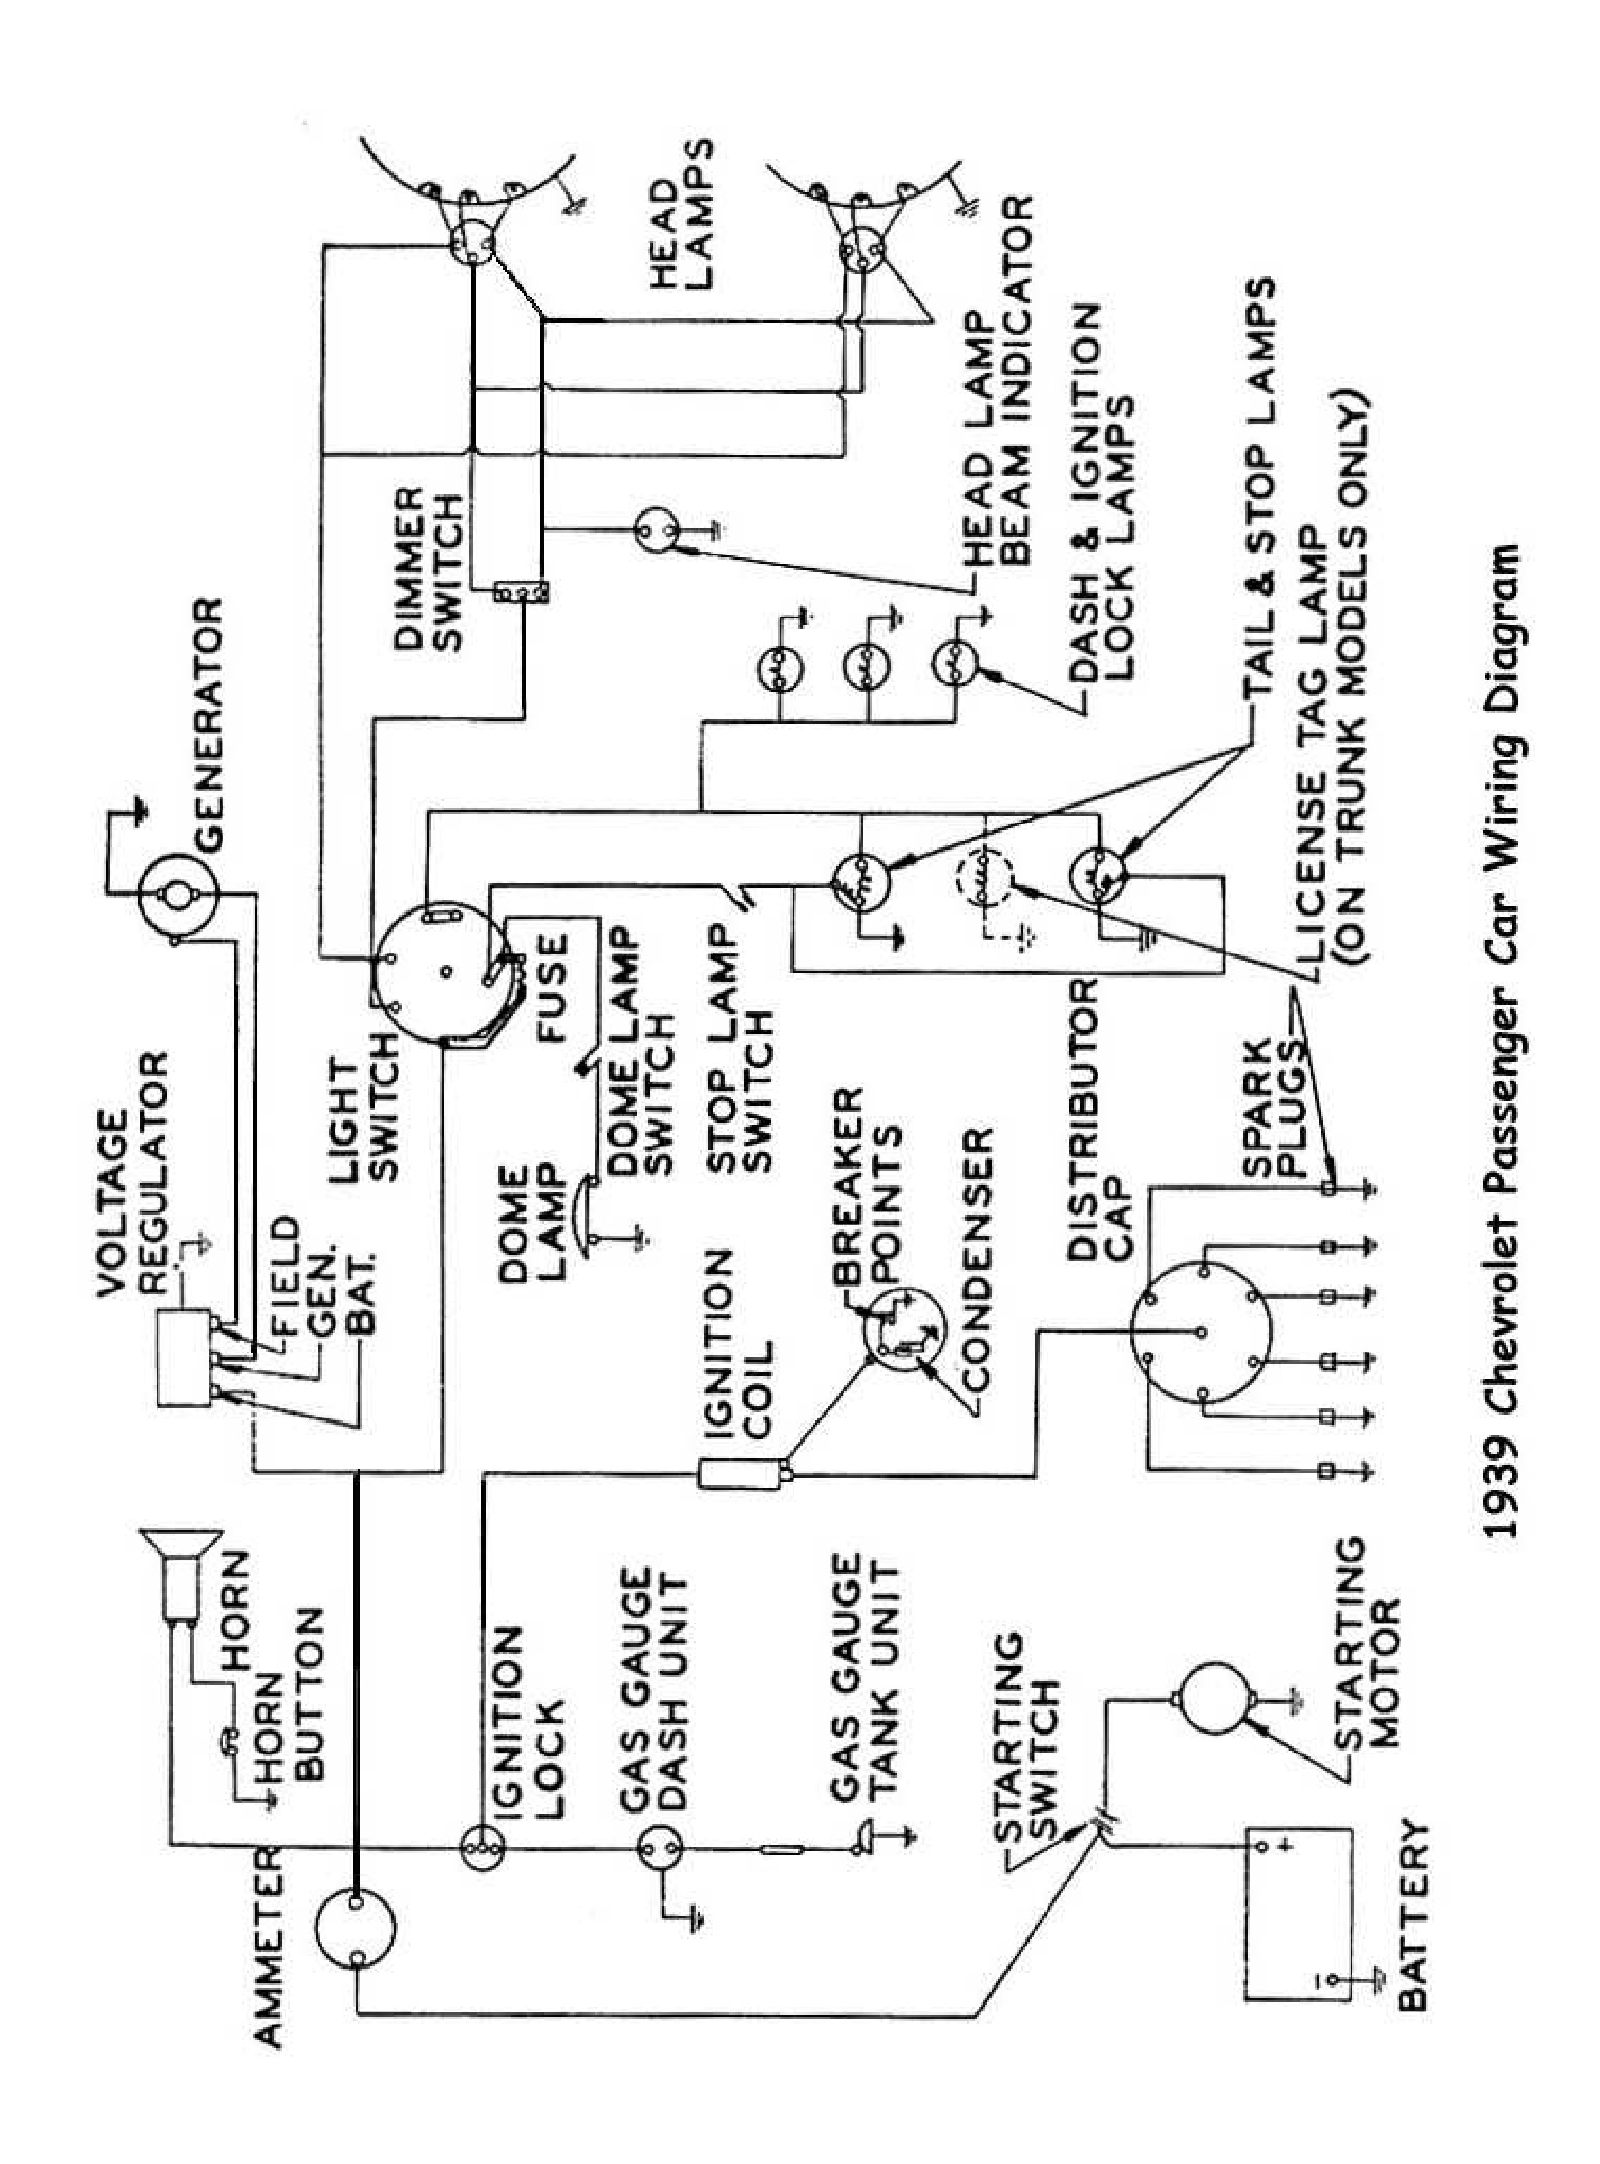 39car chevy wiring diagrams simple auto wiring diagrams at panicattacktreatment.co